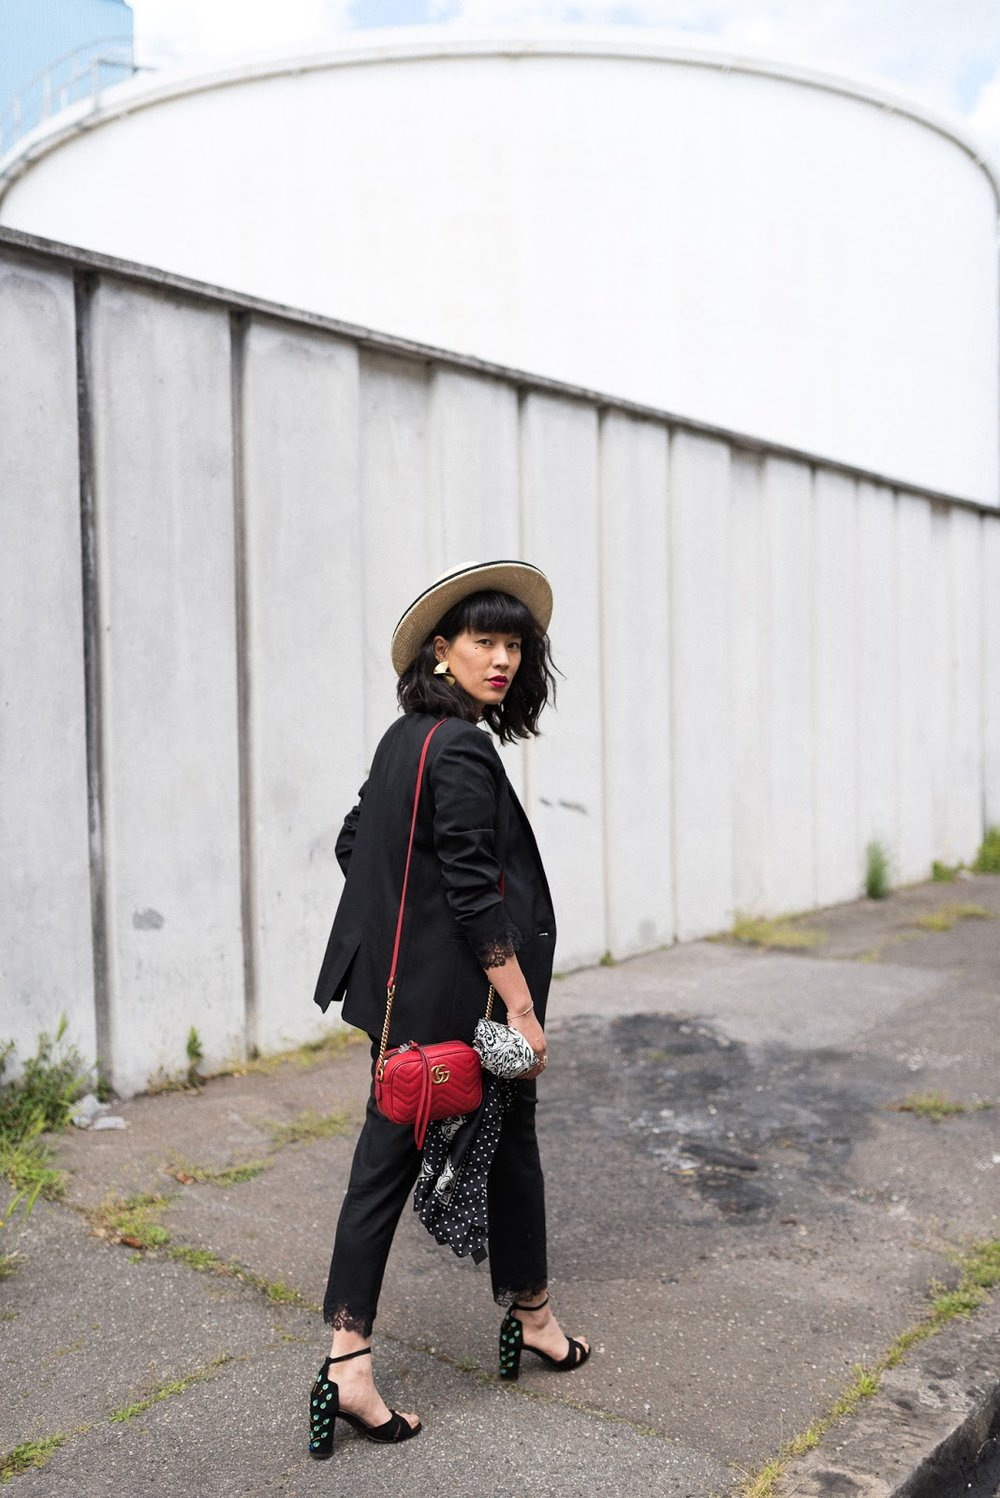 Our Model#2 styled by French fashion blogger @dressingleeloo